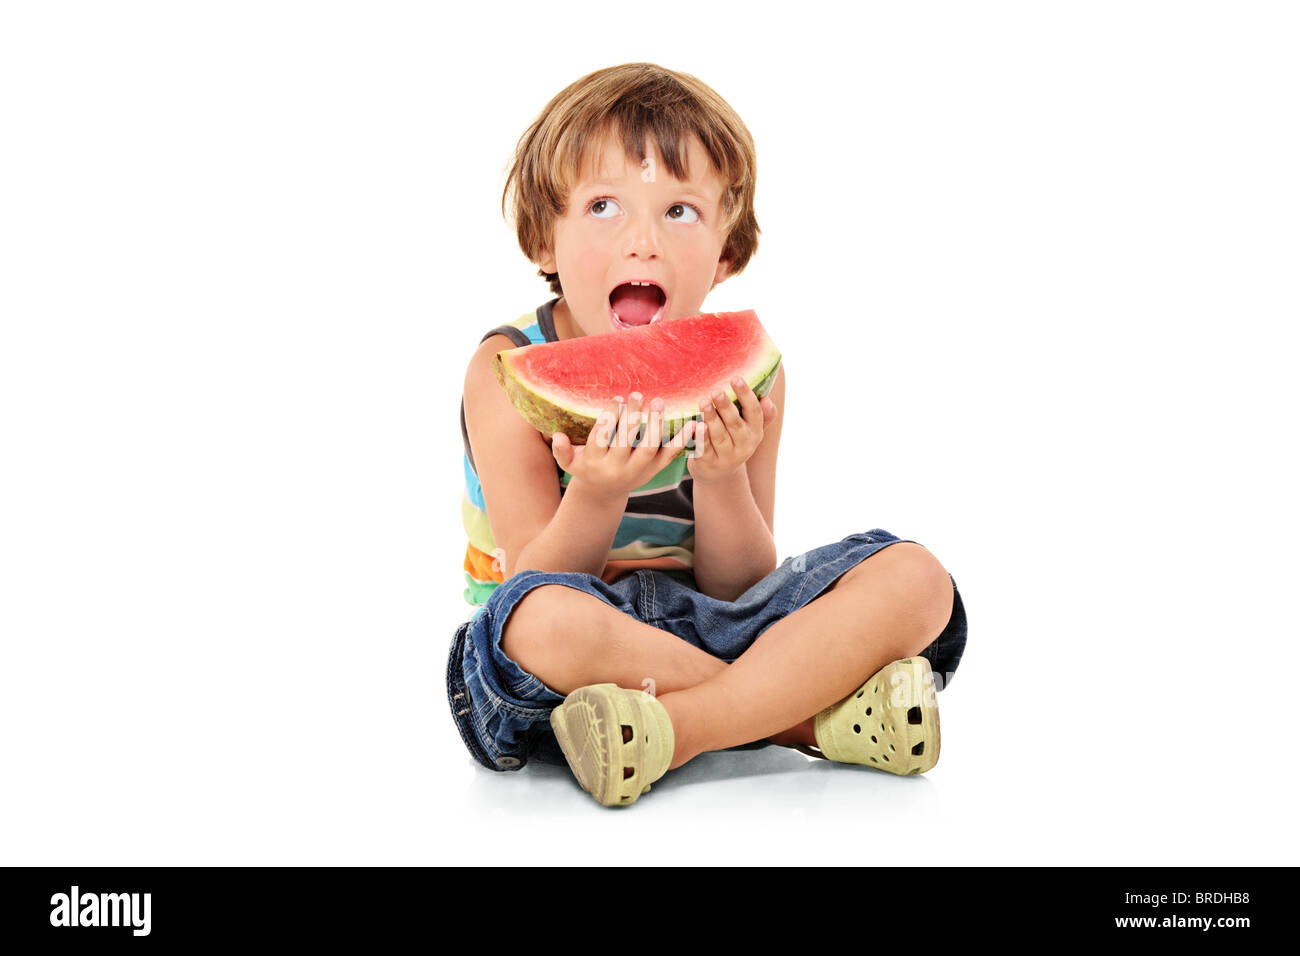 A young boy holding a slice of watermelon - Stock Image